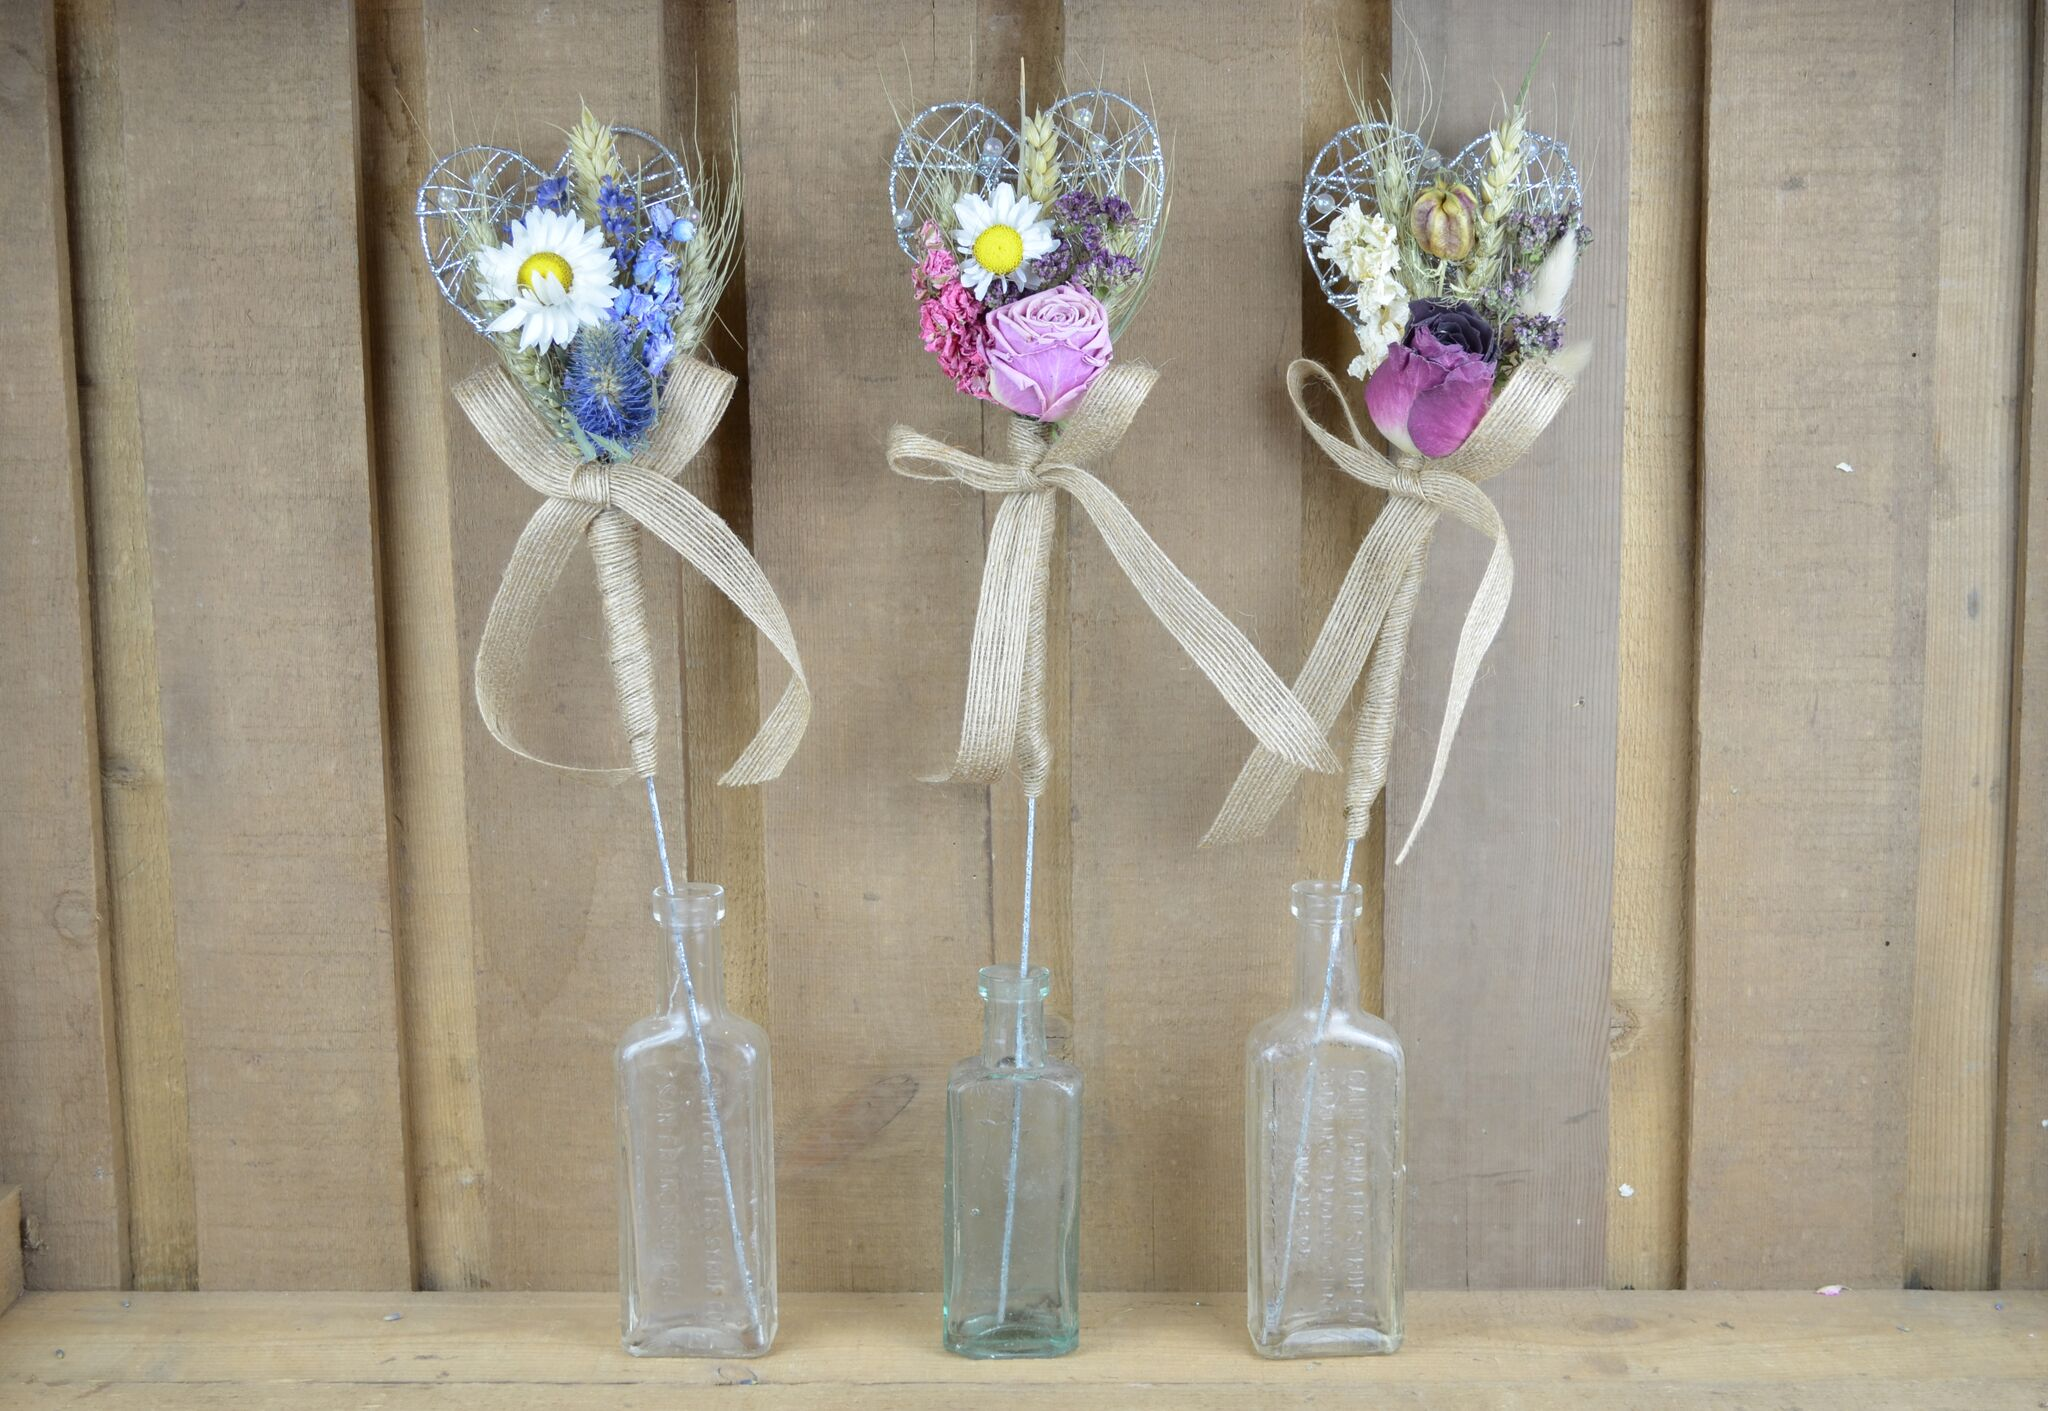 78b1d46f92e25 New on the scene, utterly adorable and won't break the bank! For that  perfect final flourish, treat your little maids to these gorgeous flower  girl wands…